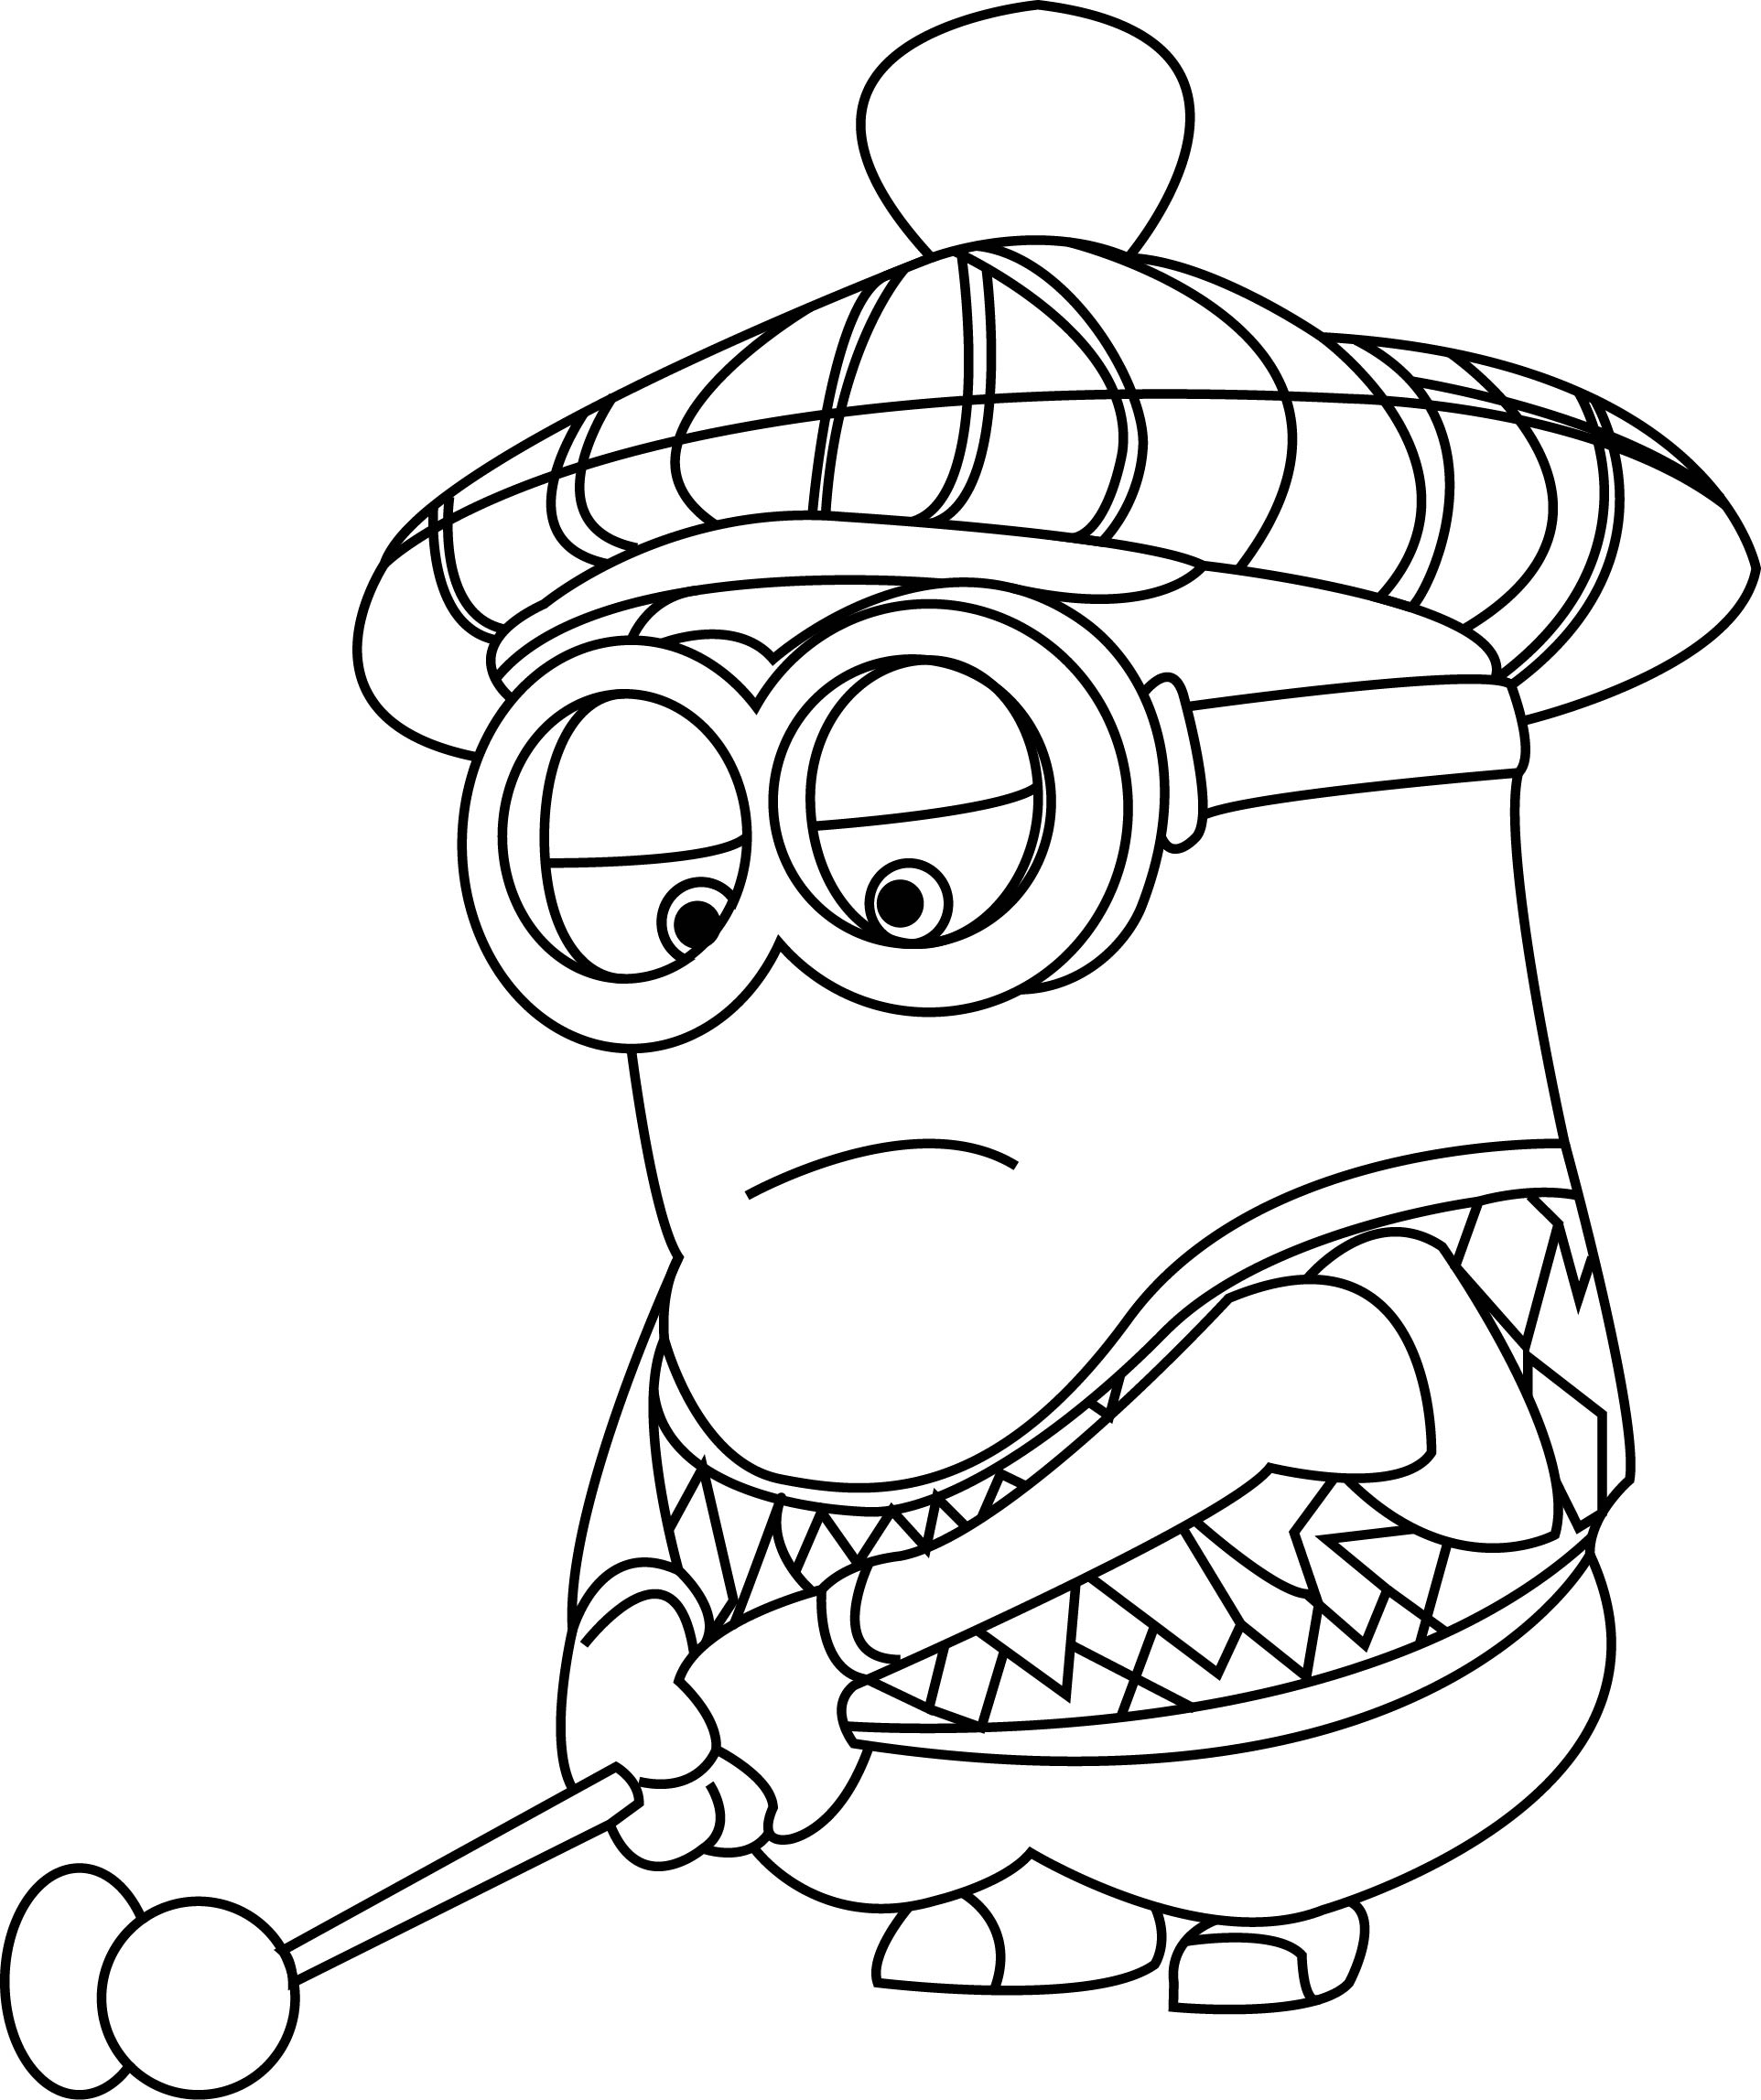 despicable me coloring pages all characters Coloring4free ... | 2295x1924